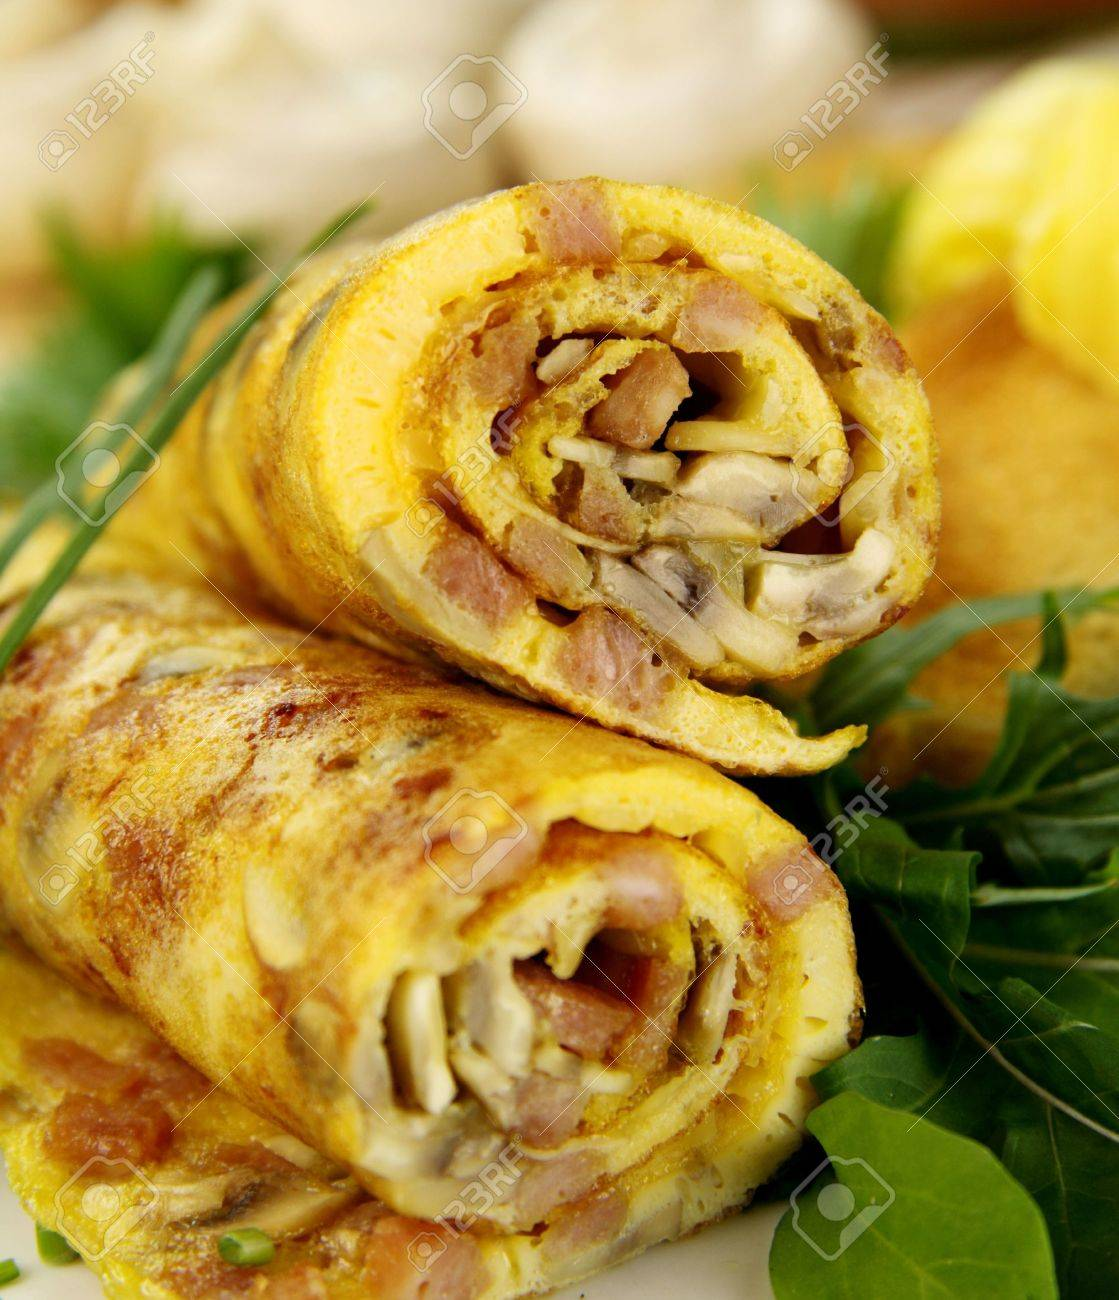 Delicious rolled mushroom and bacon omelette freshly prepared and ready to serve. - 5067759